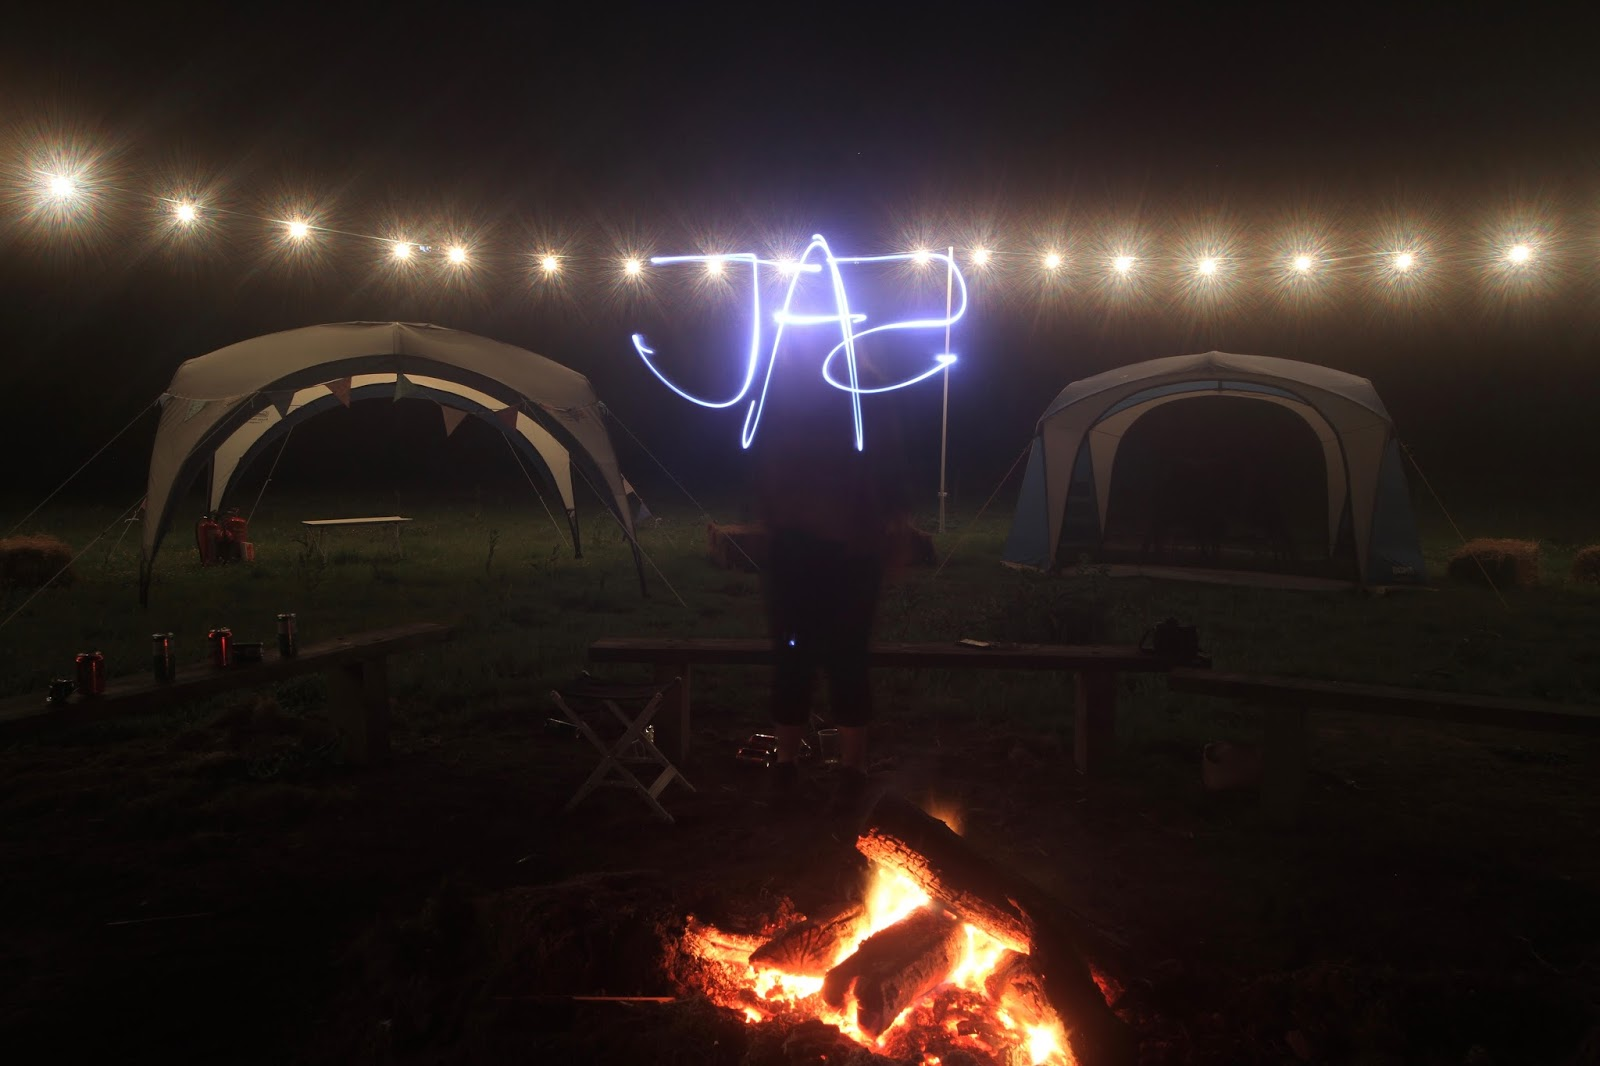 """finally seeing my name """"Jaz"""" in lights"""